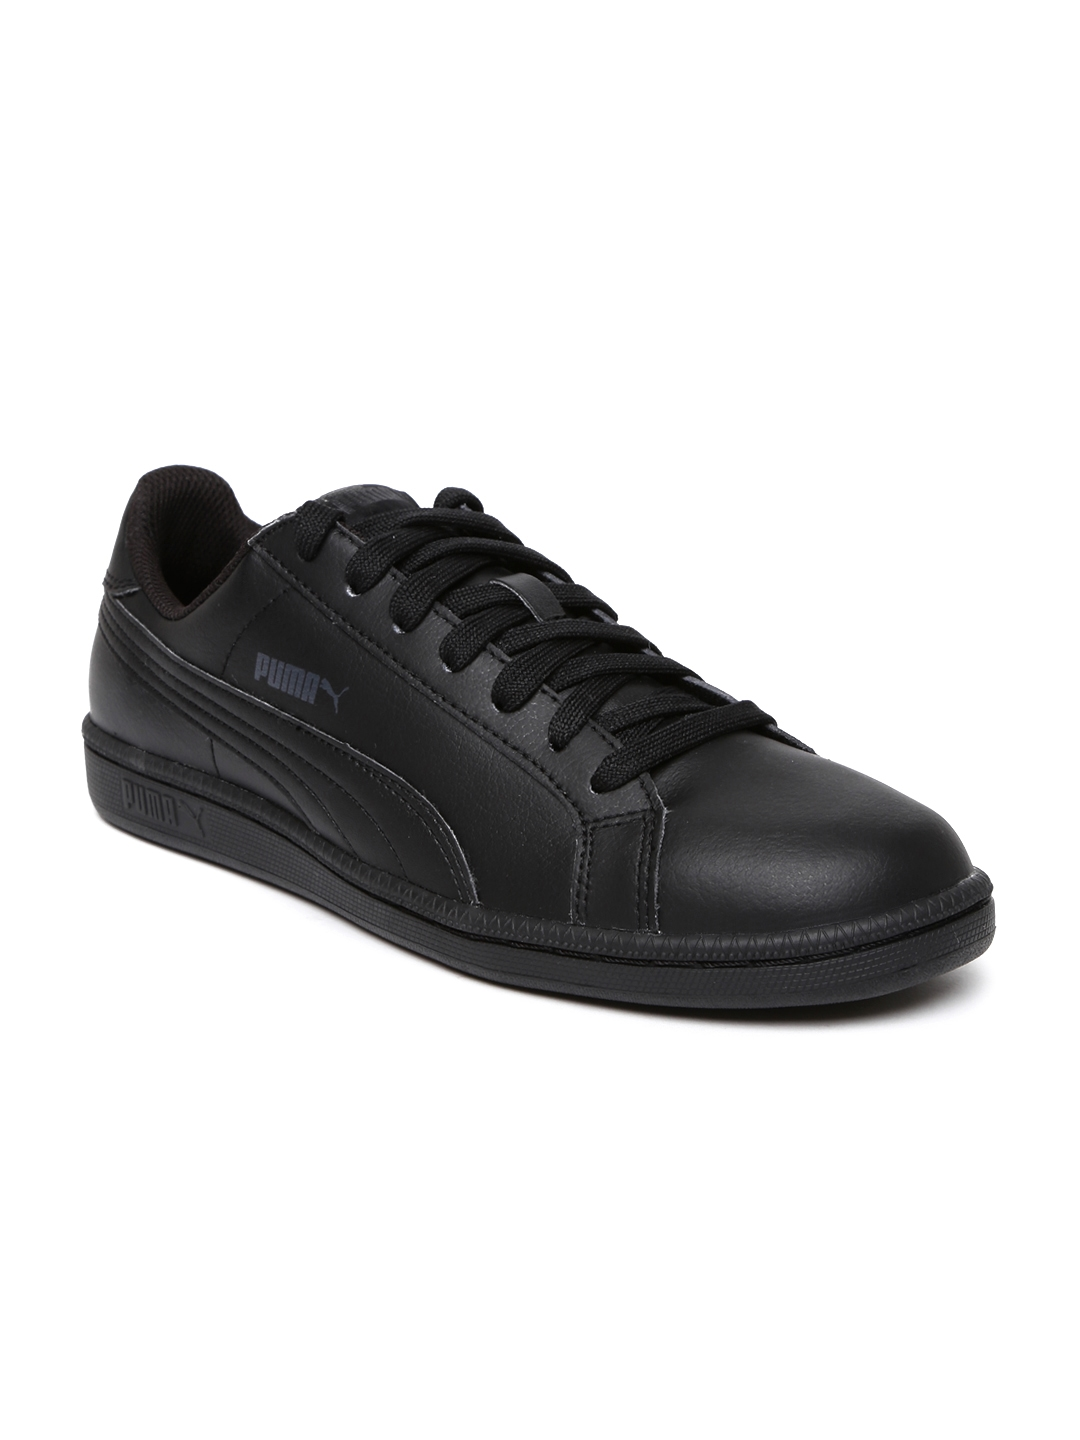 puma black sneakers shoes